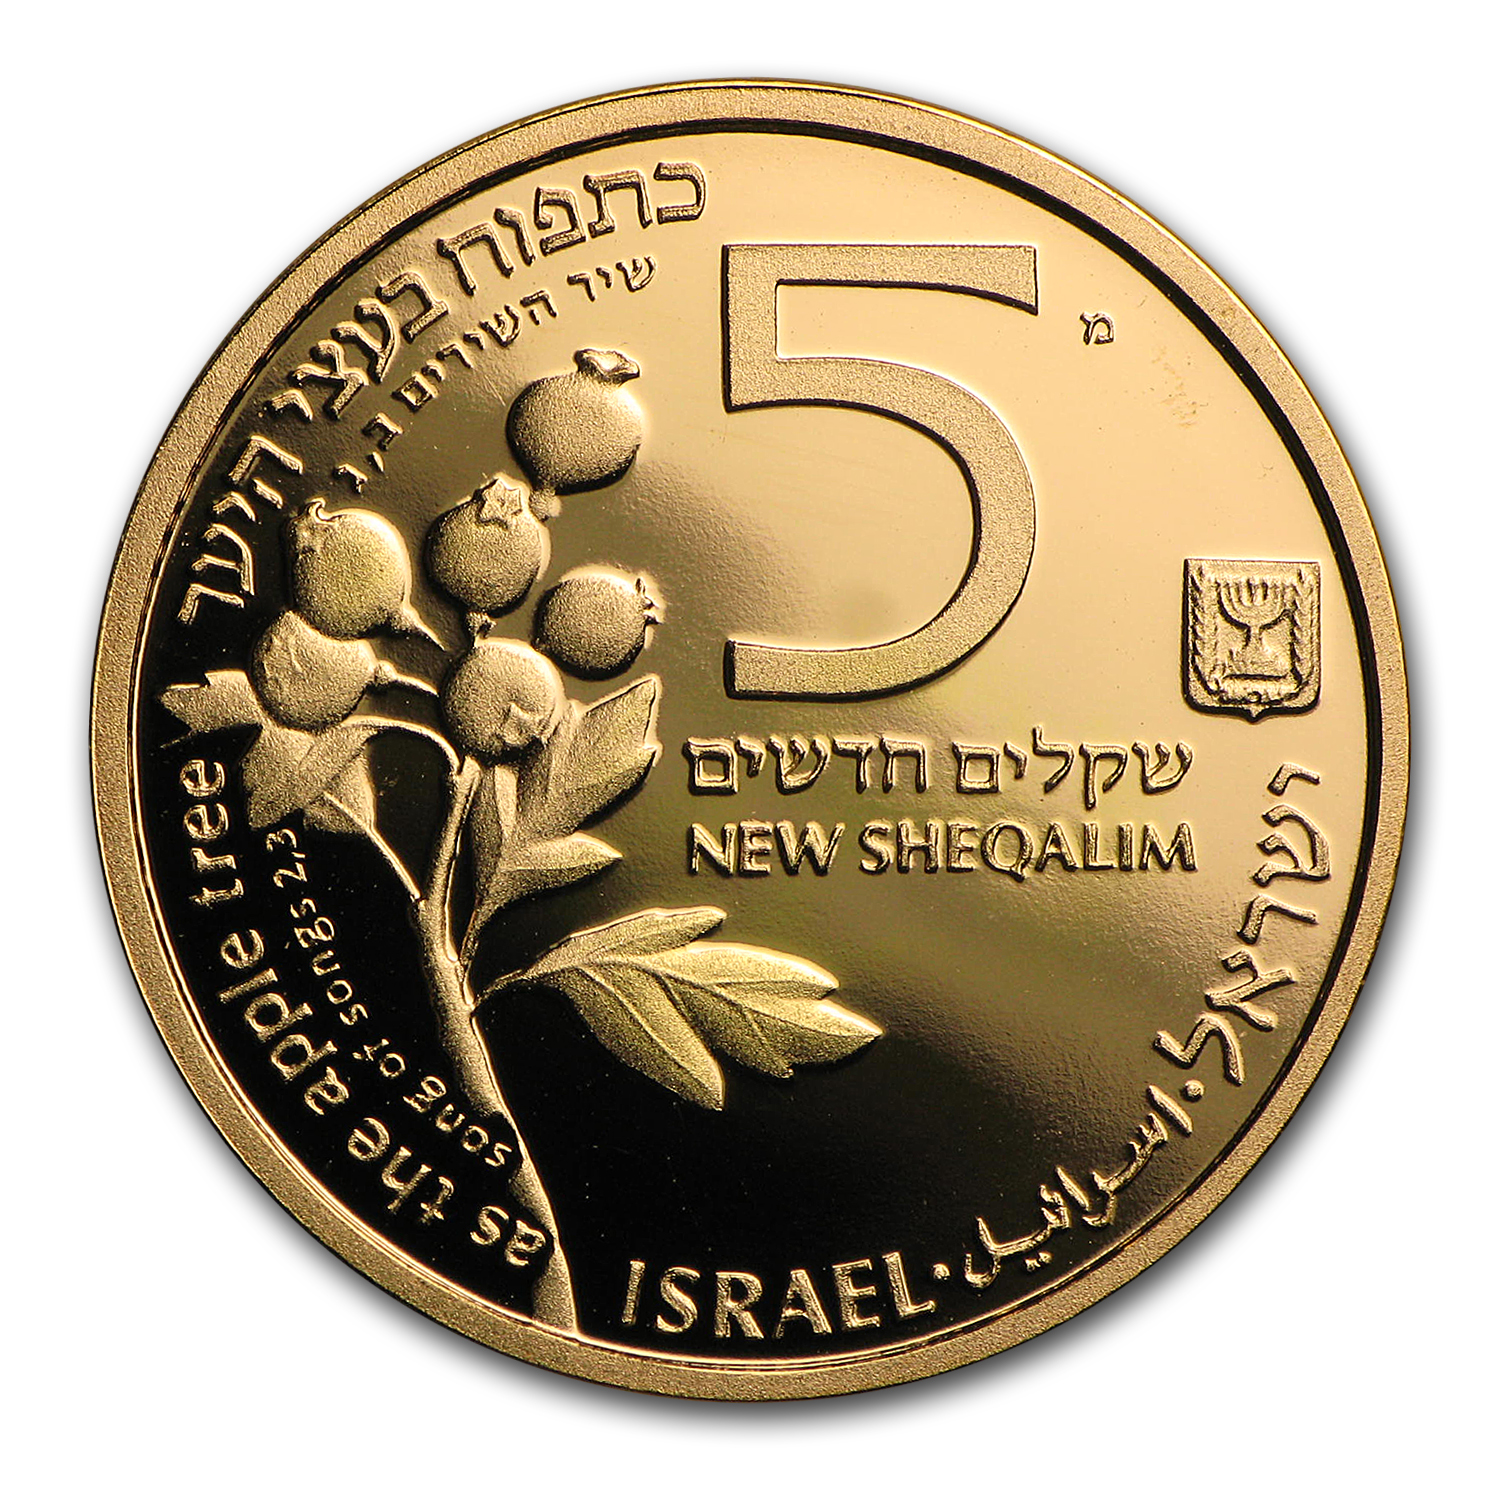 1993 Israel Proof Gold 5 Sheqalim Wildlife Series Hart & Apples